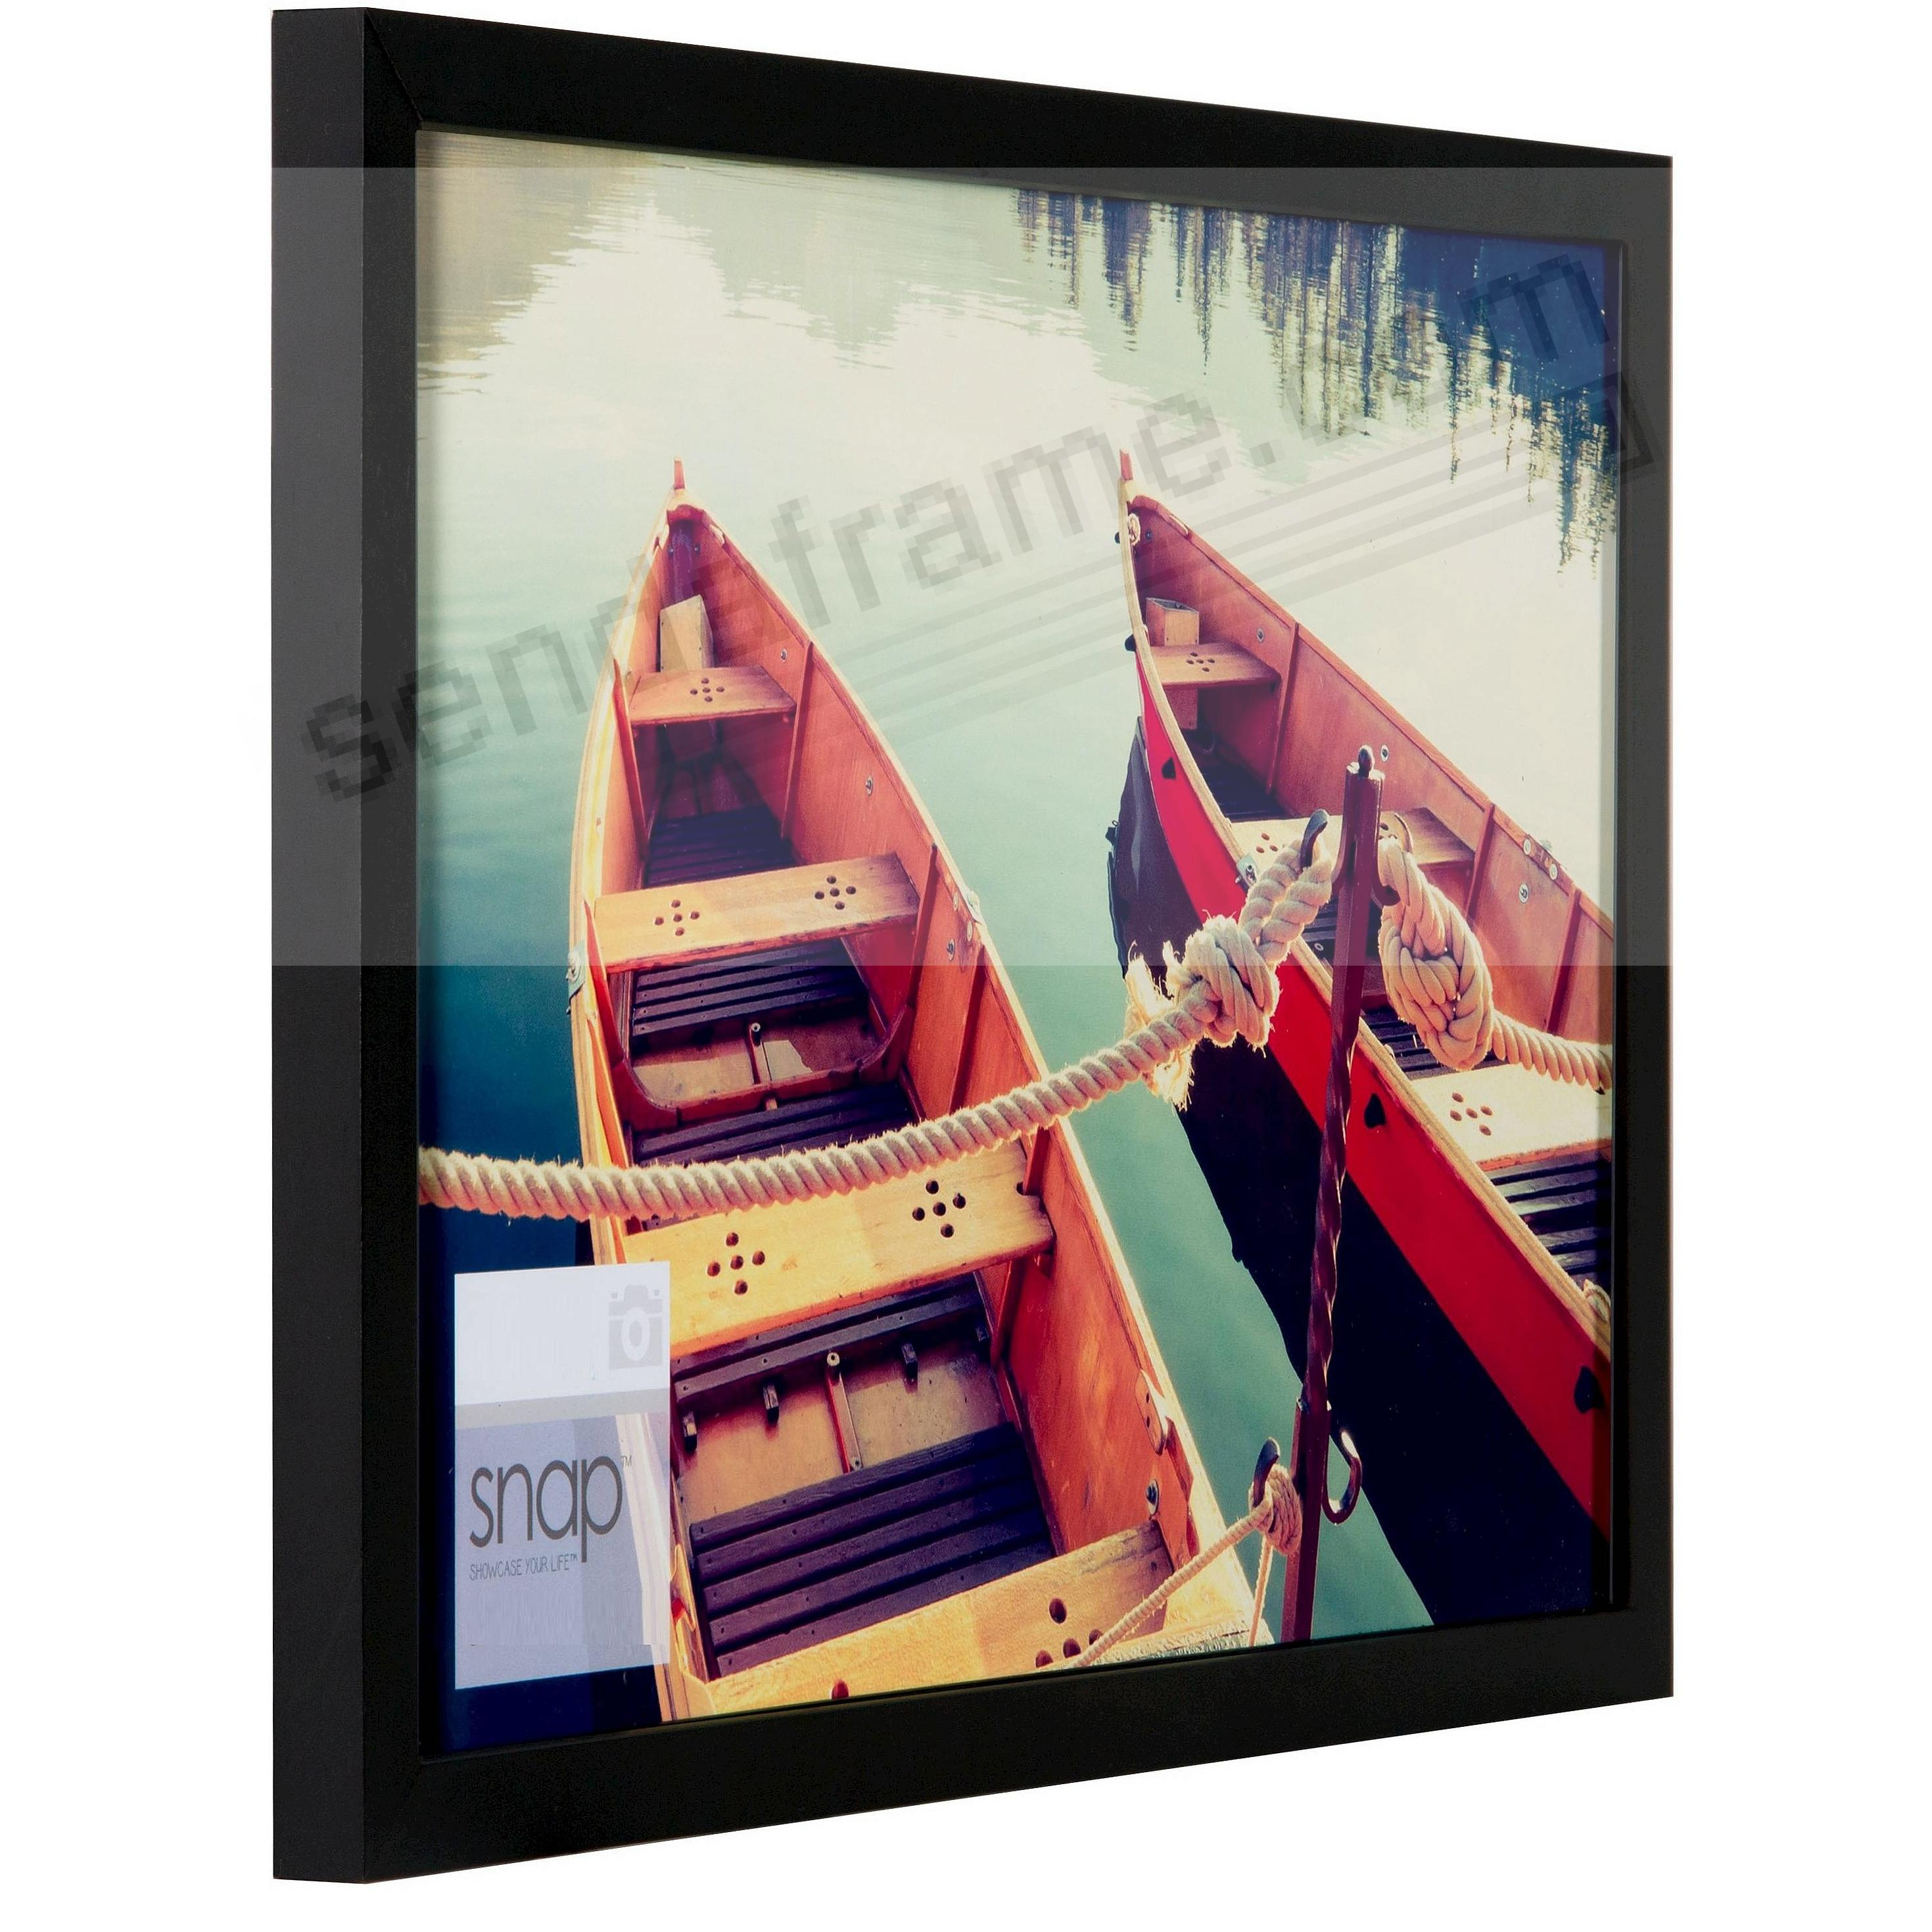 Black Wood Frame 13x19 By Snap Picture Frames Photo Albums